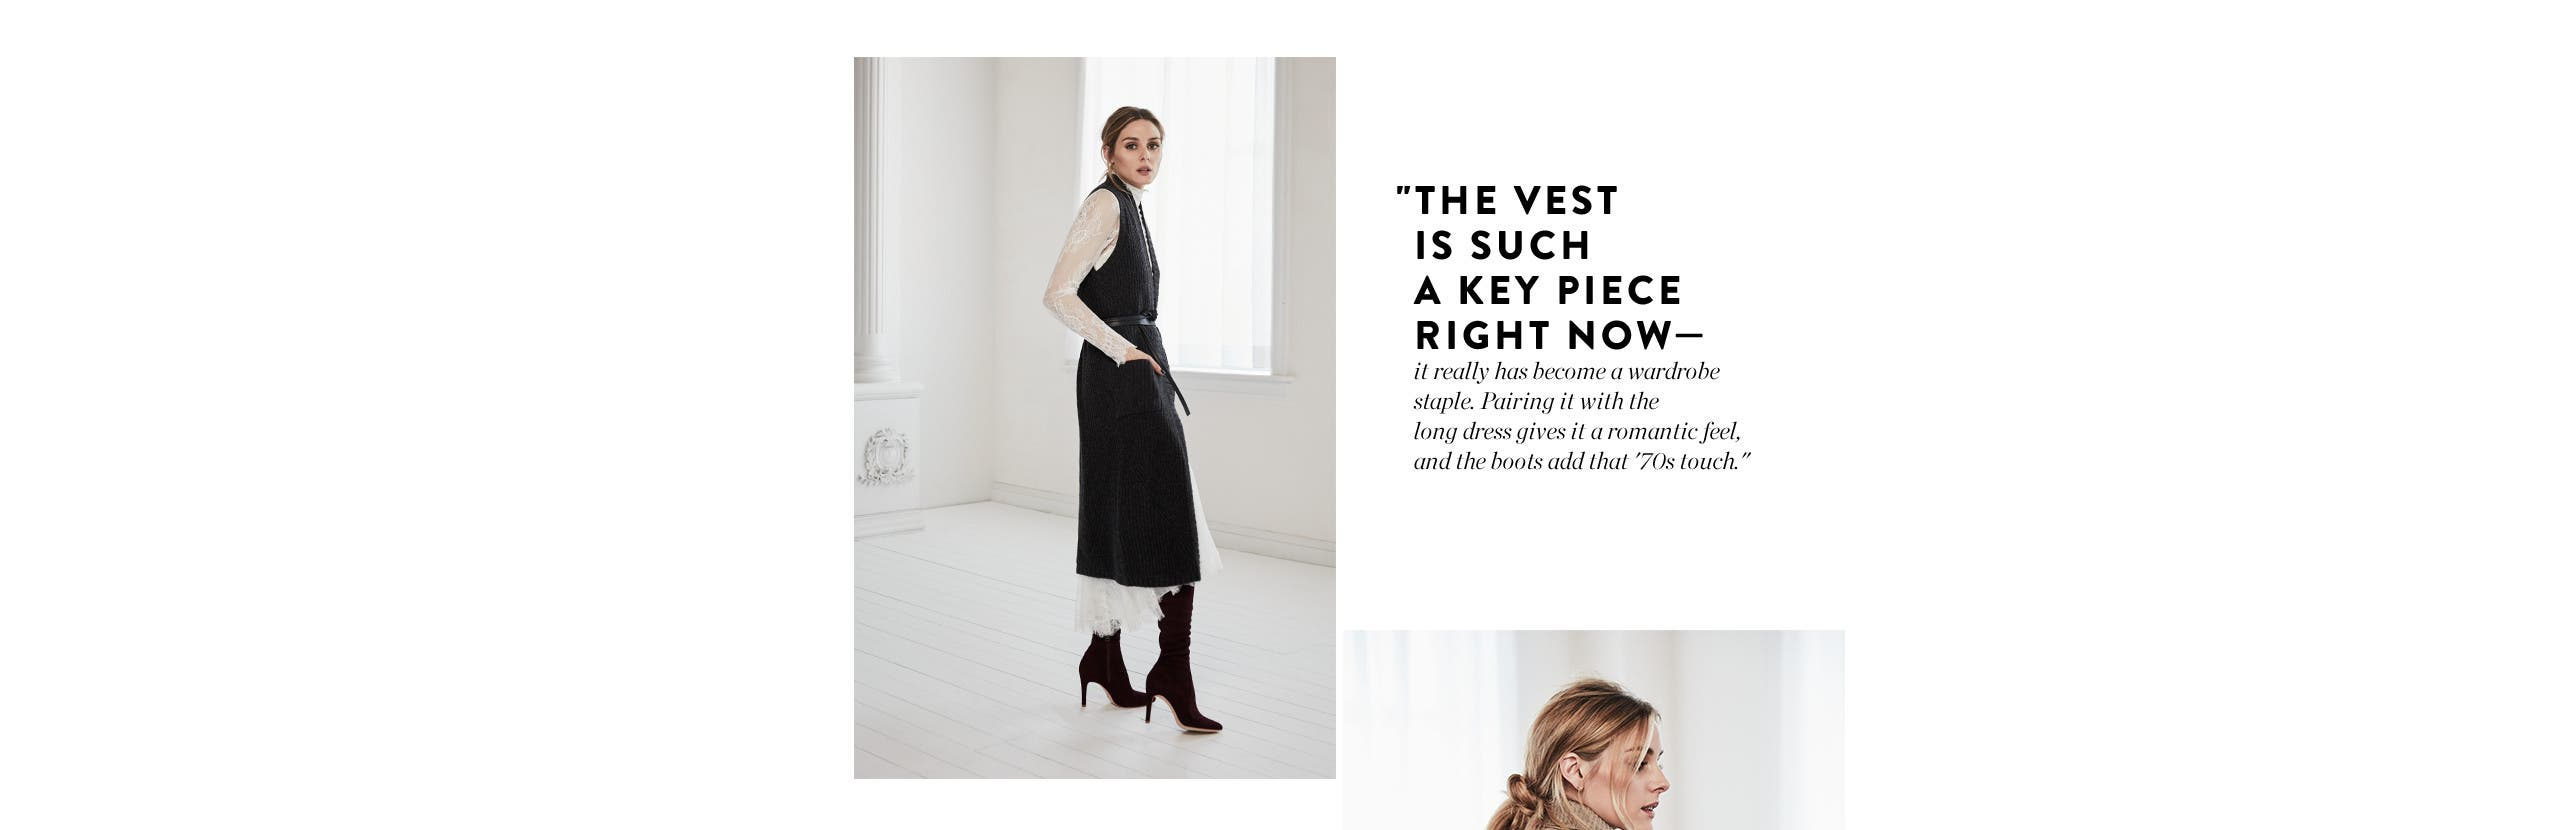 Exclusive fall styles from Olivia Palermo + Chelsea28.